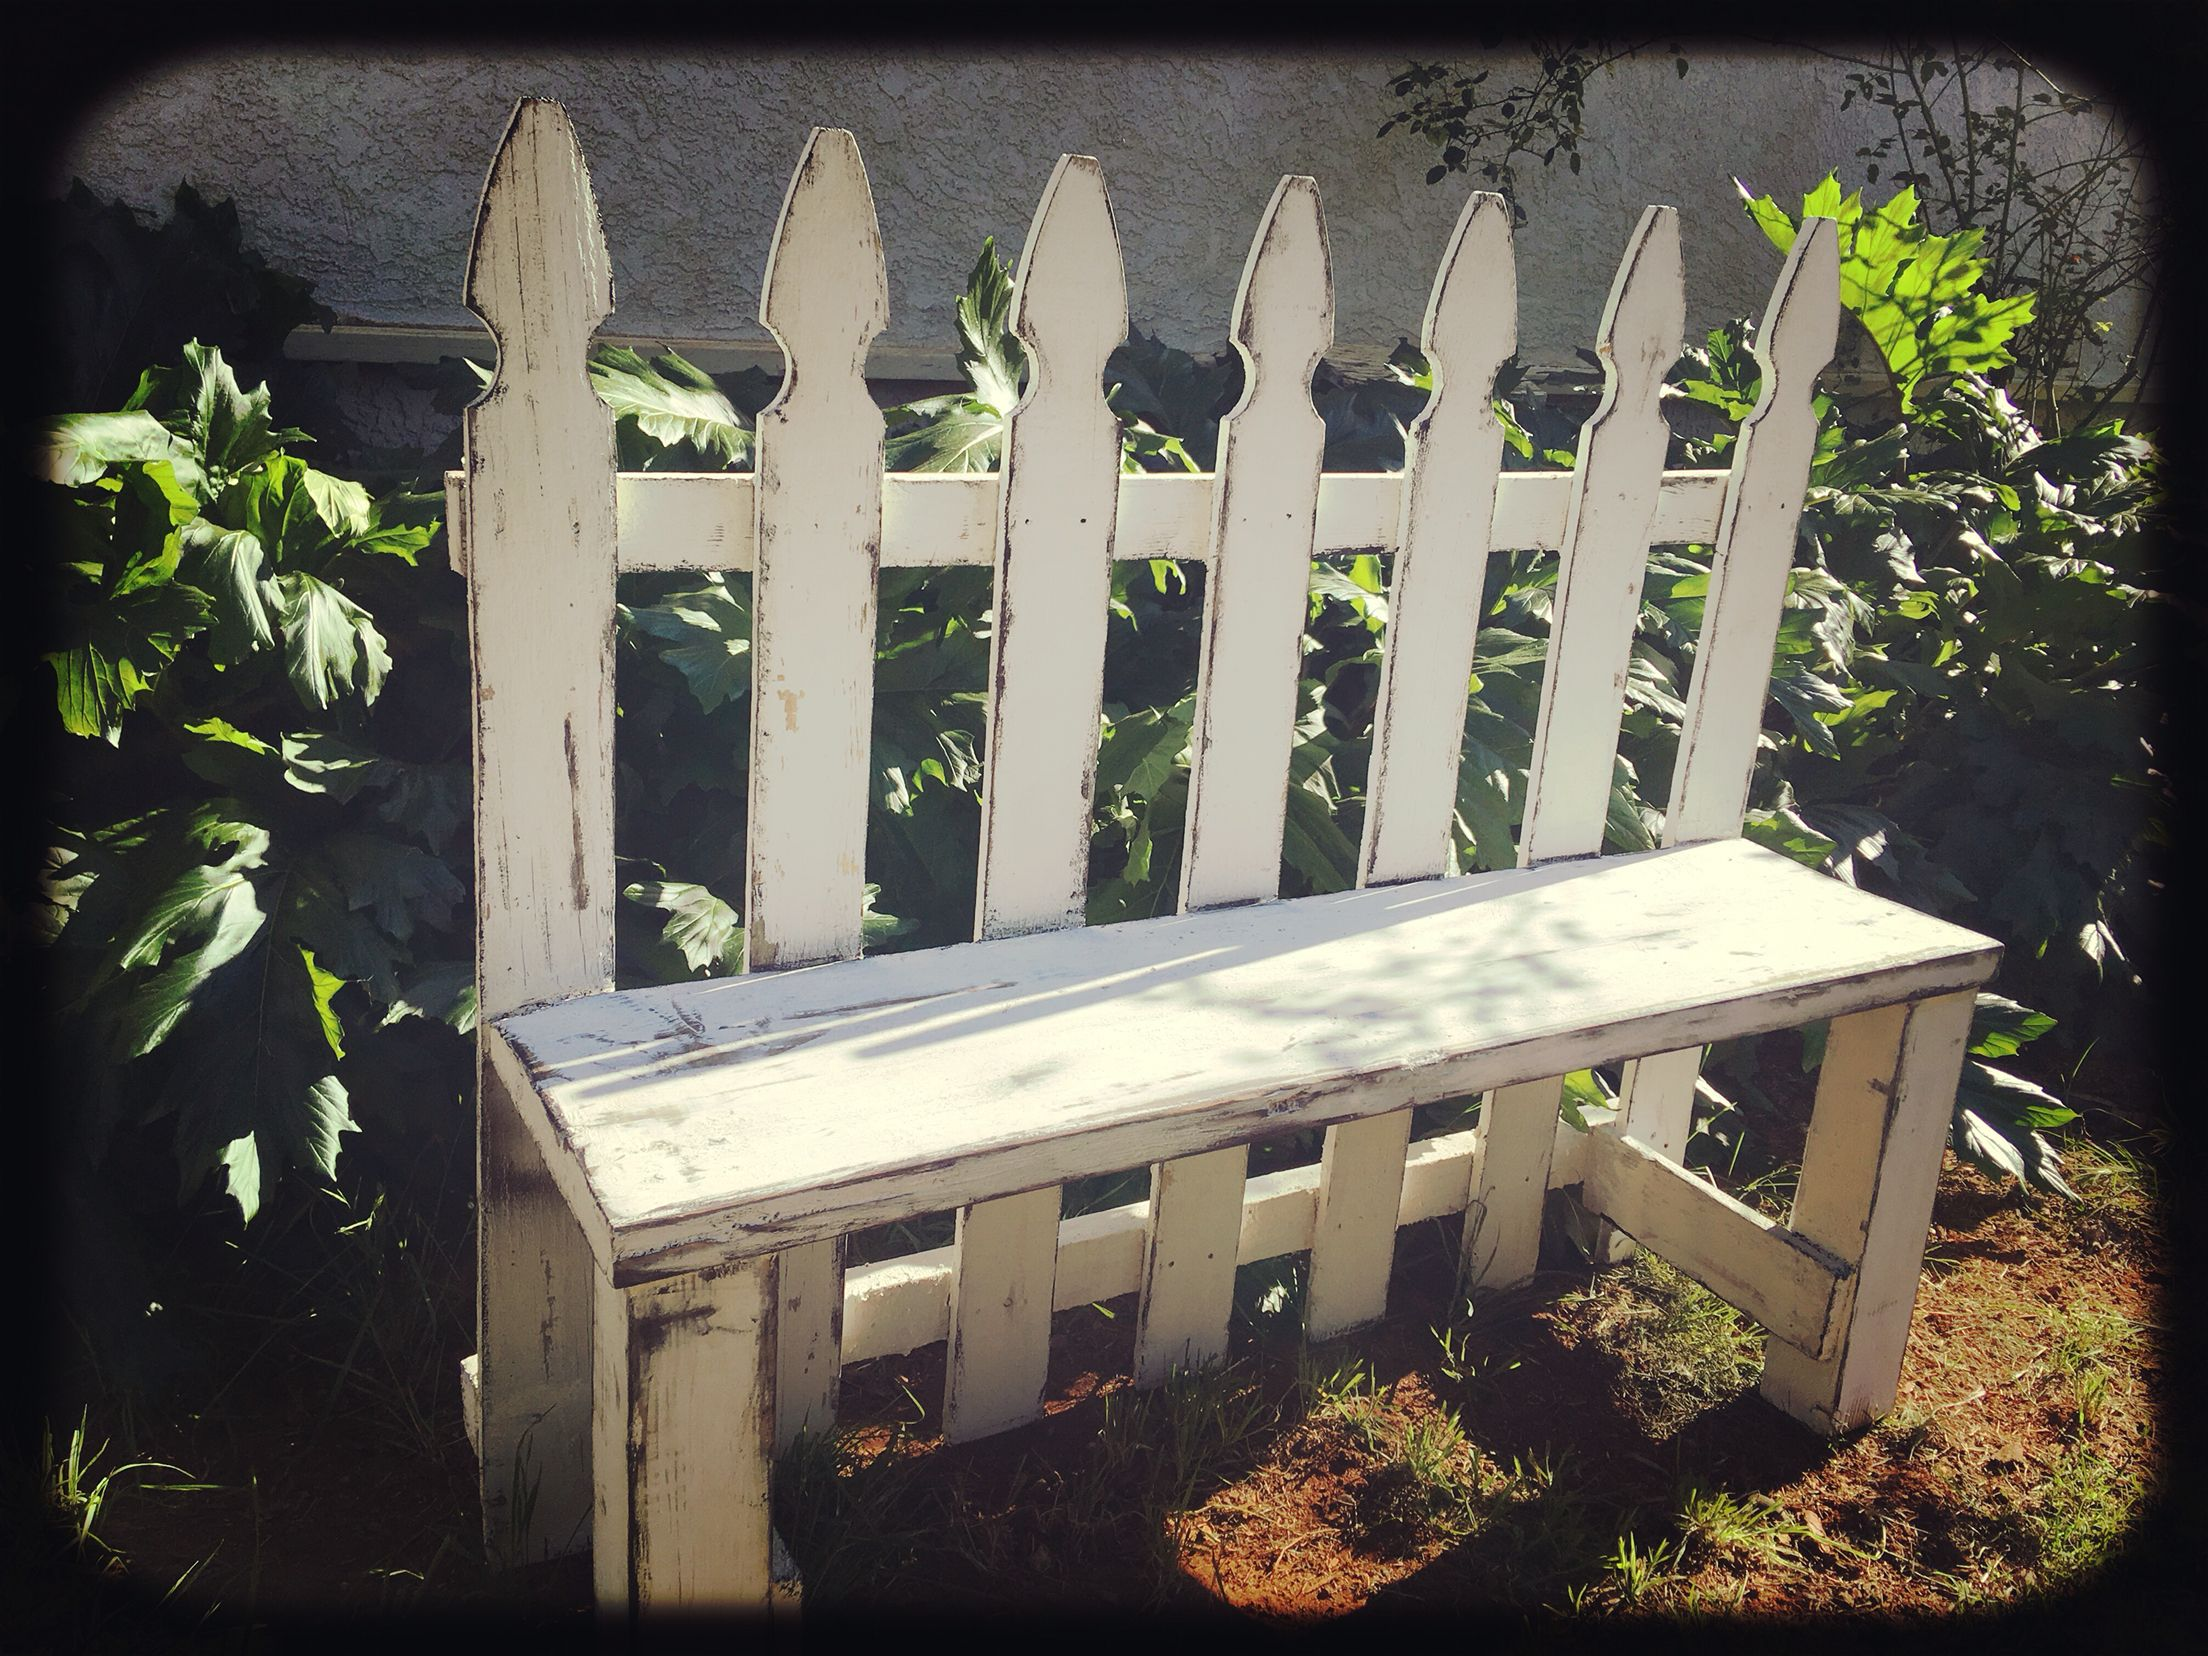 Gorgeous Upcycled Distressed White Picket Fence Garden Bench from Angry Wood Design. Measuring 46 Long and 36 tall with a seat